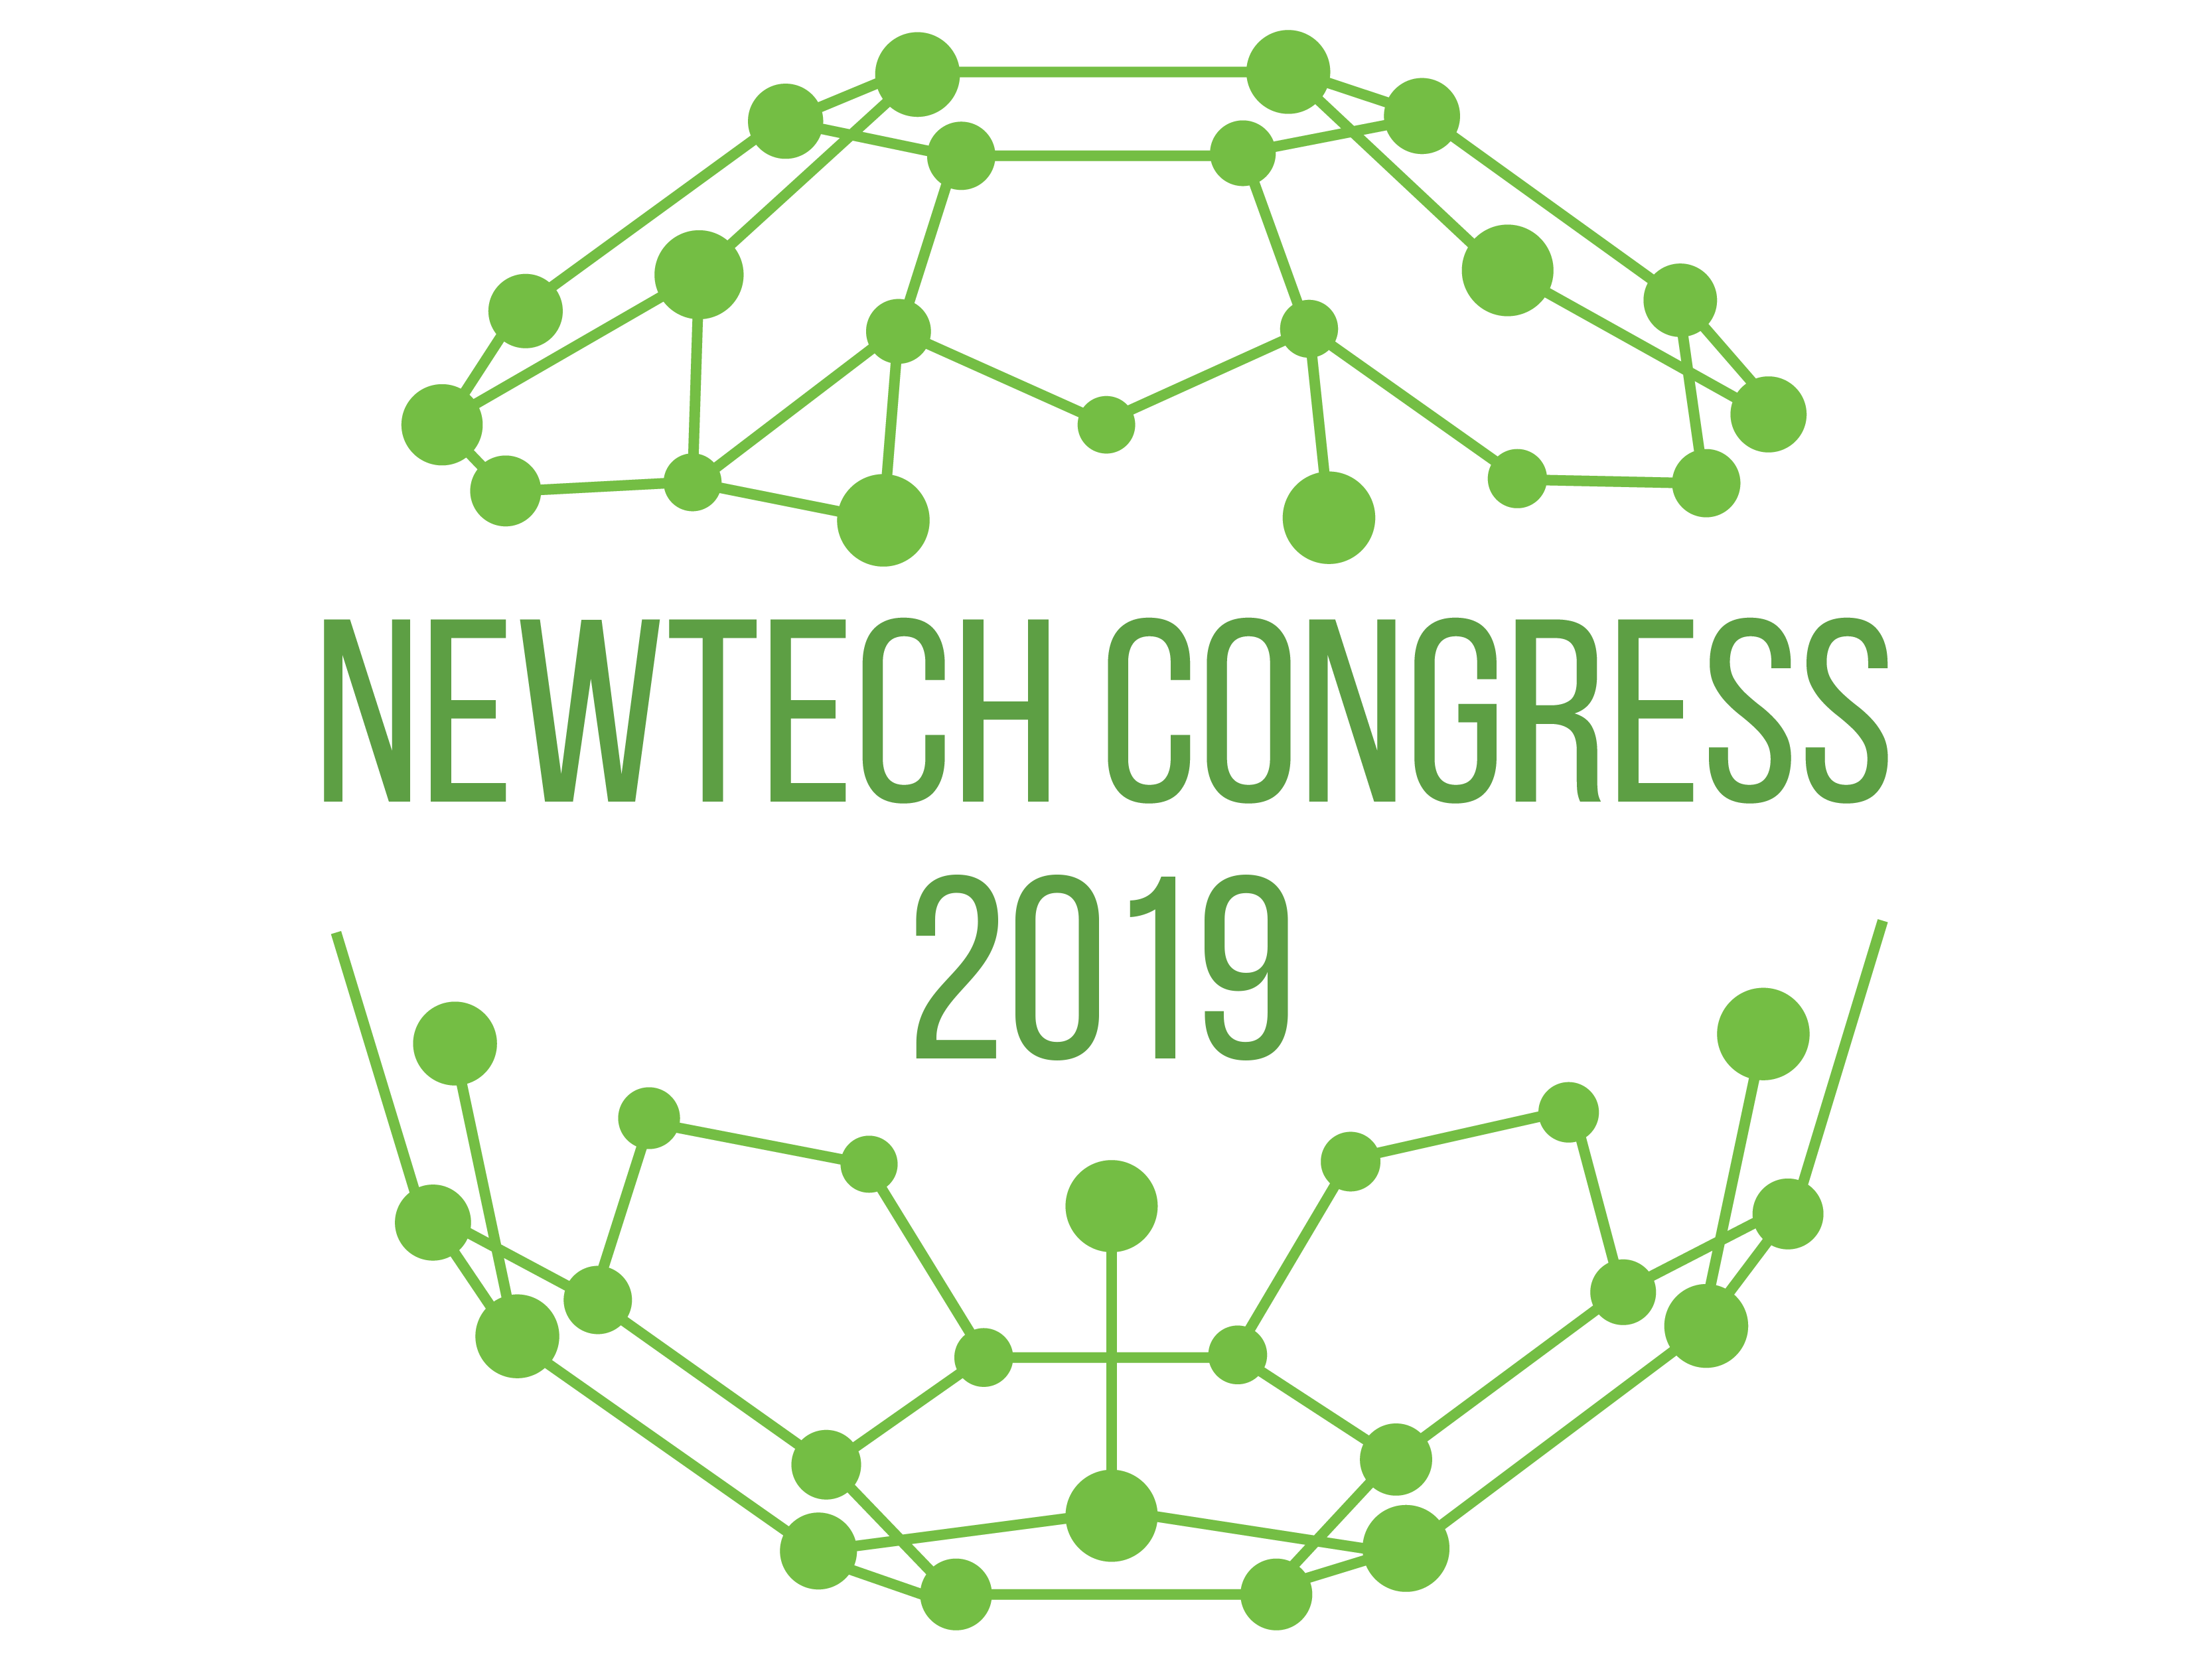 4th World Congress on New Technologies (NewTech'19), Madrid, Spain, August 19 - 21, 2018